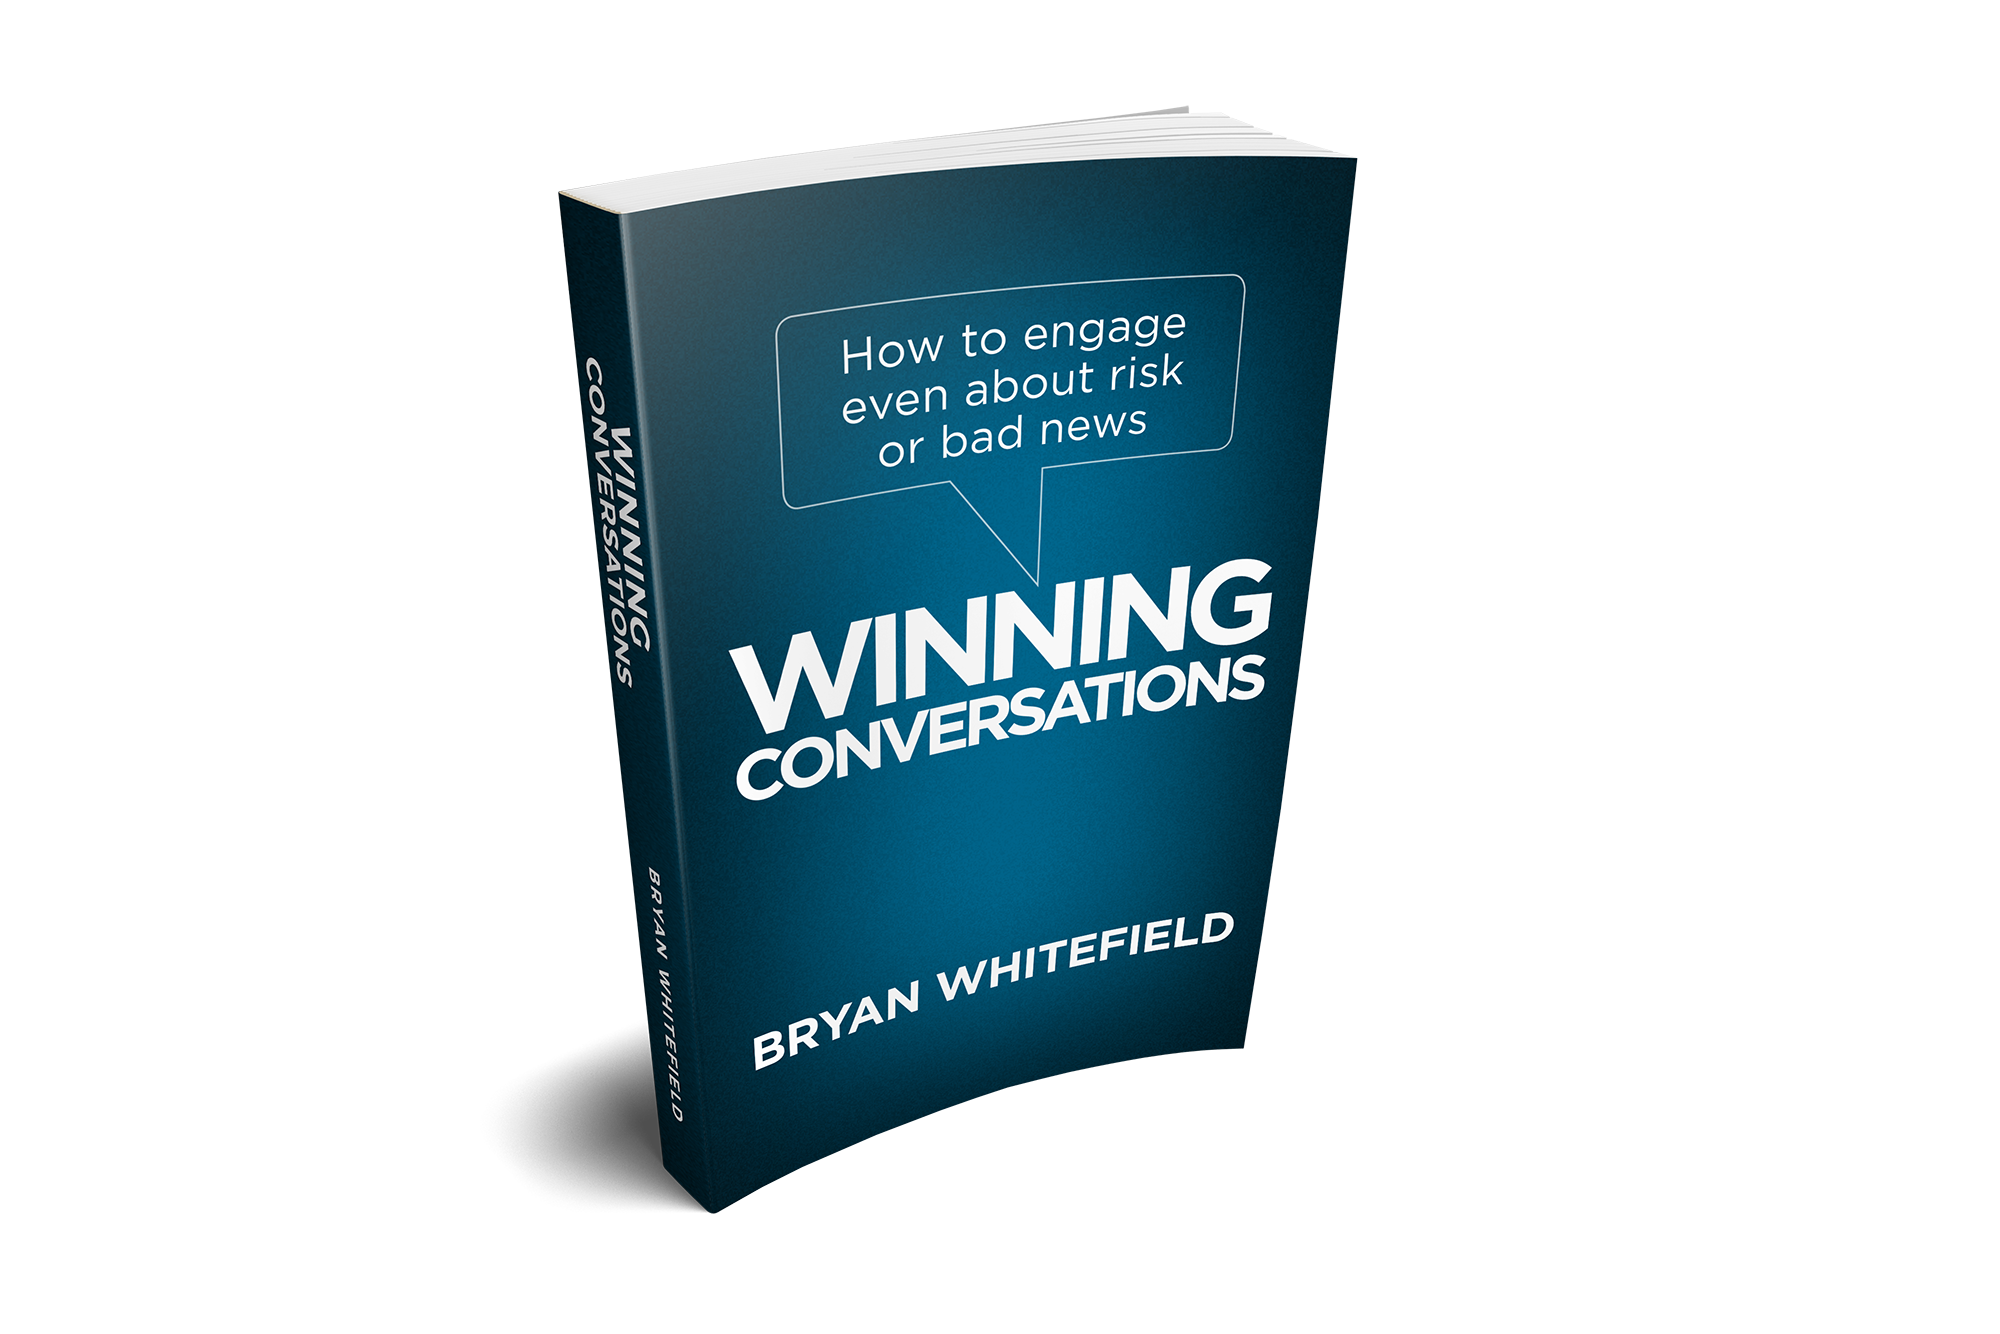 WINNING CONVERSATIONS How to engage even about risk or bad news